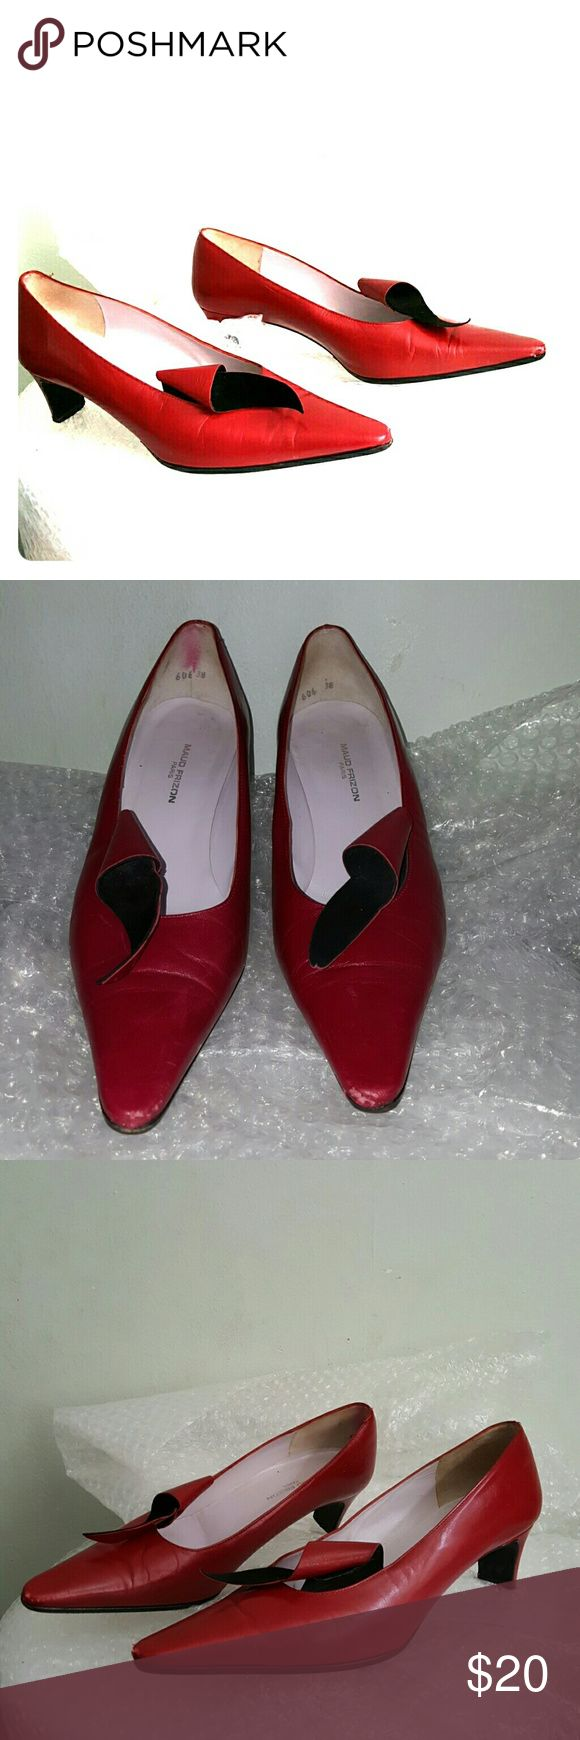 MAUD FRIZON Paris red leaf pumps size 38 Vintage pair. Red leather upper with an elegant leaf-like detail. Scubbing at toes and a left heel. Made in Italy. MAUD FRIZON Shoes Heels